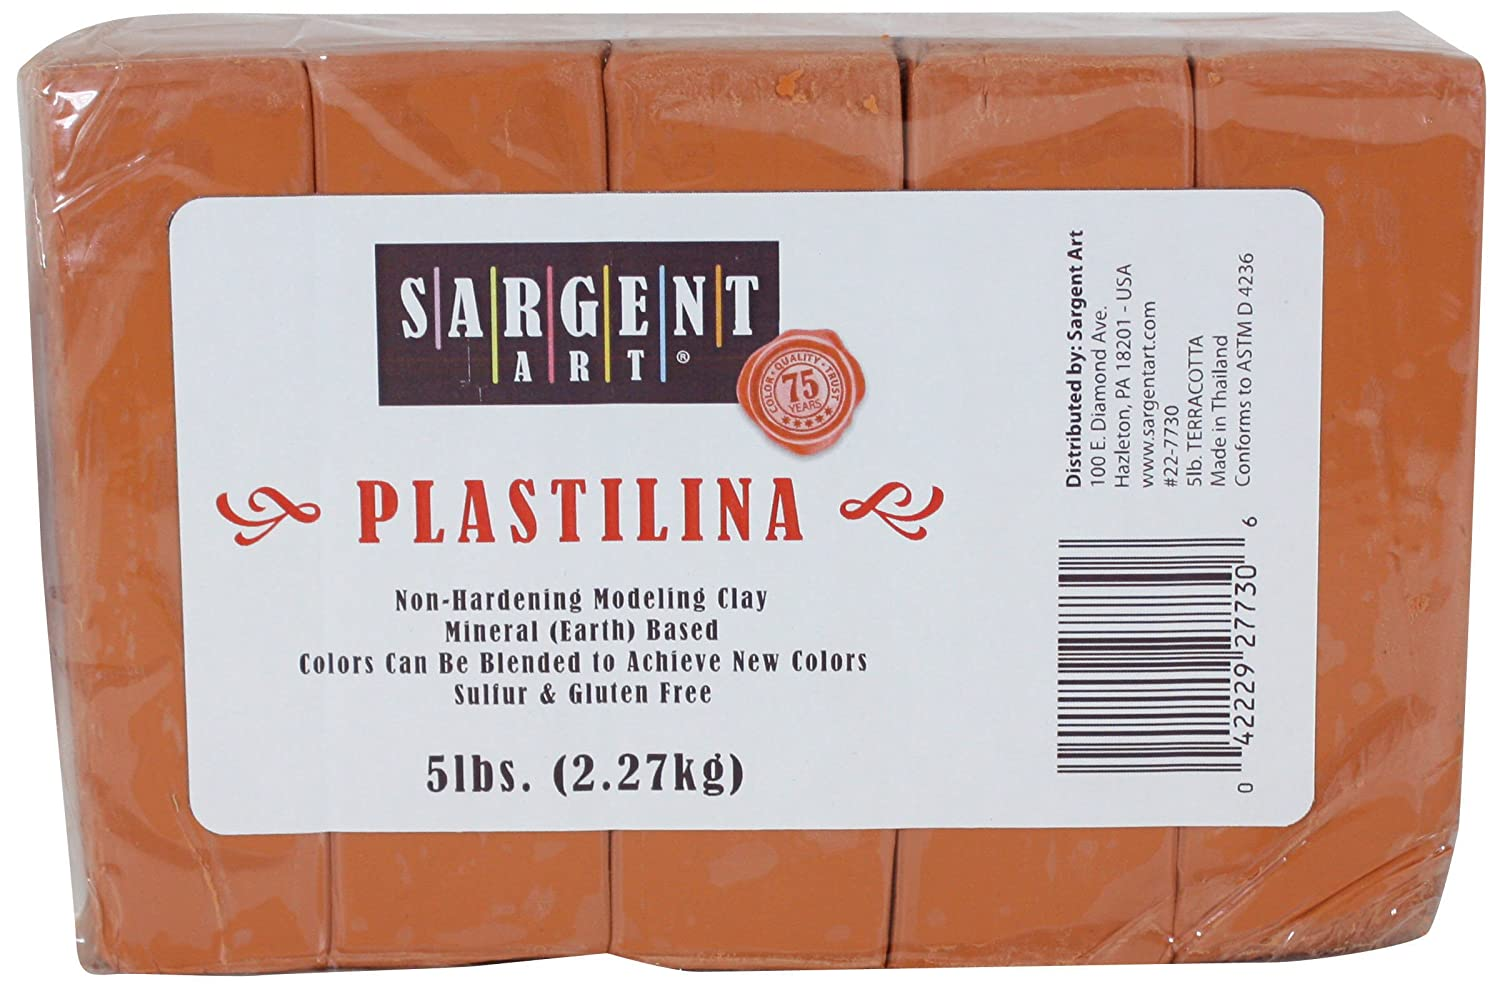 Sargent Art Plastilina Modeling Clay, 5-Pound, Terracotta 22-7730